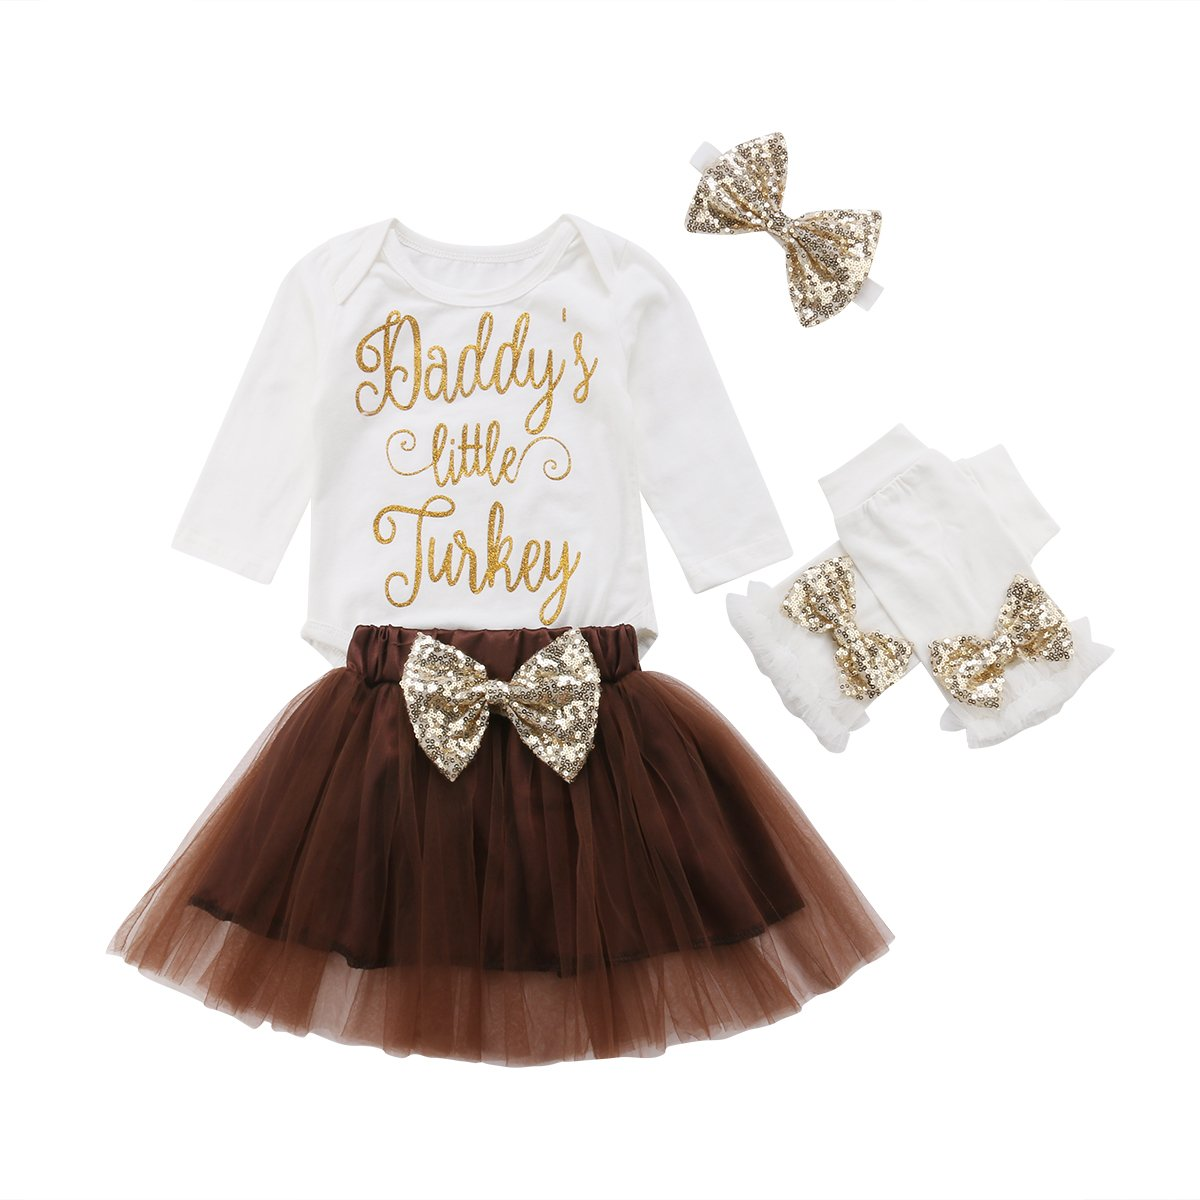 Infant Baby Girls Thanksgiving Outfit Newborn Romper Tops + Tutu Skirt + Leg Warmers Headband 4PCS Set sweetyhouse